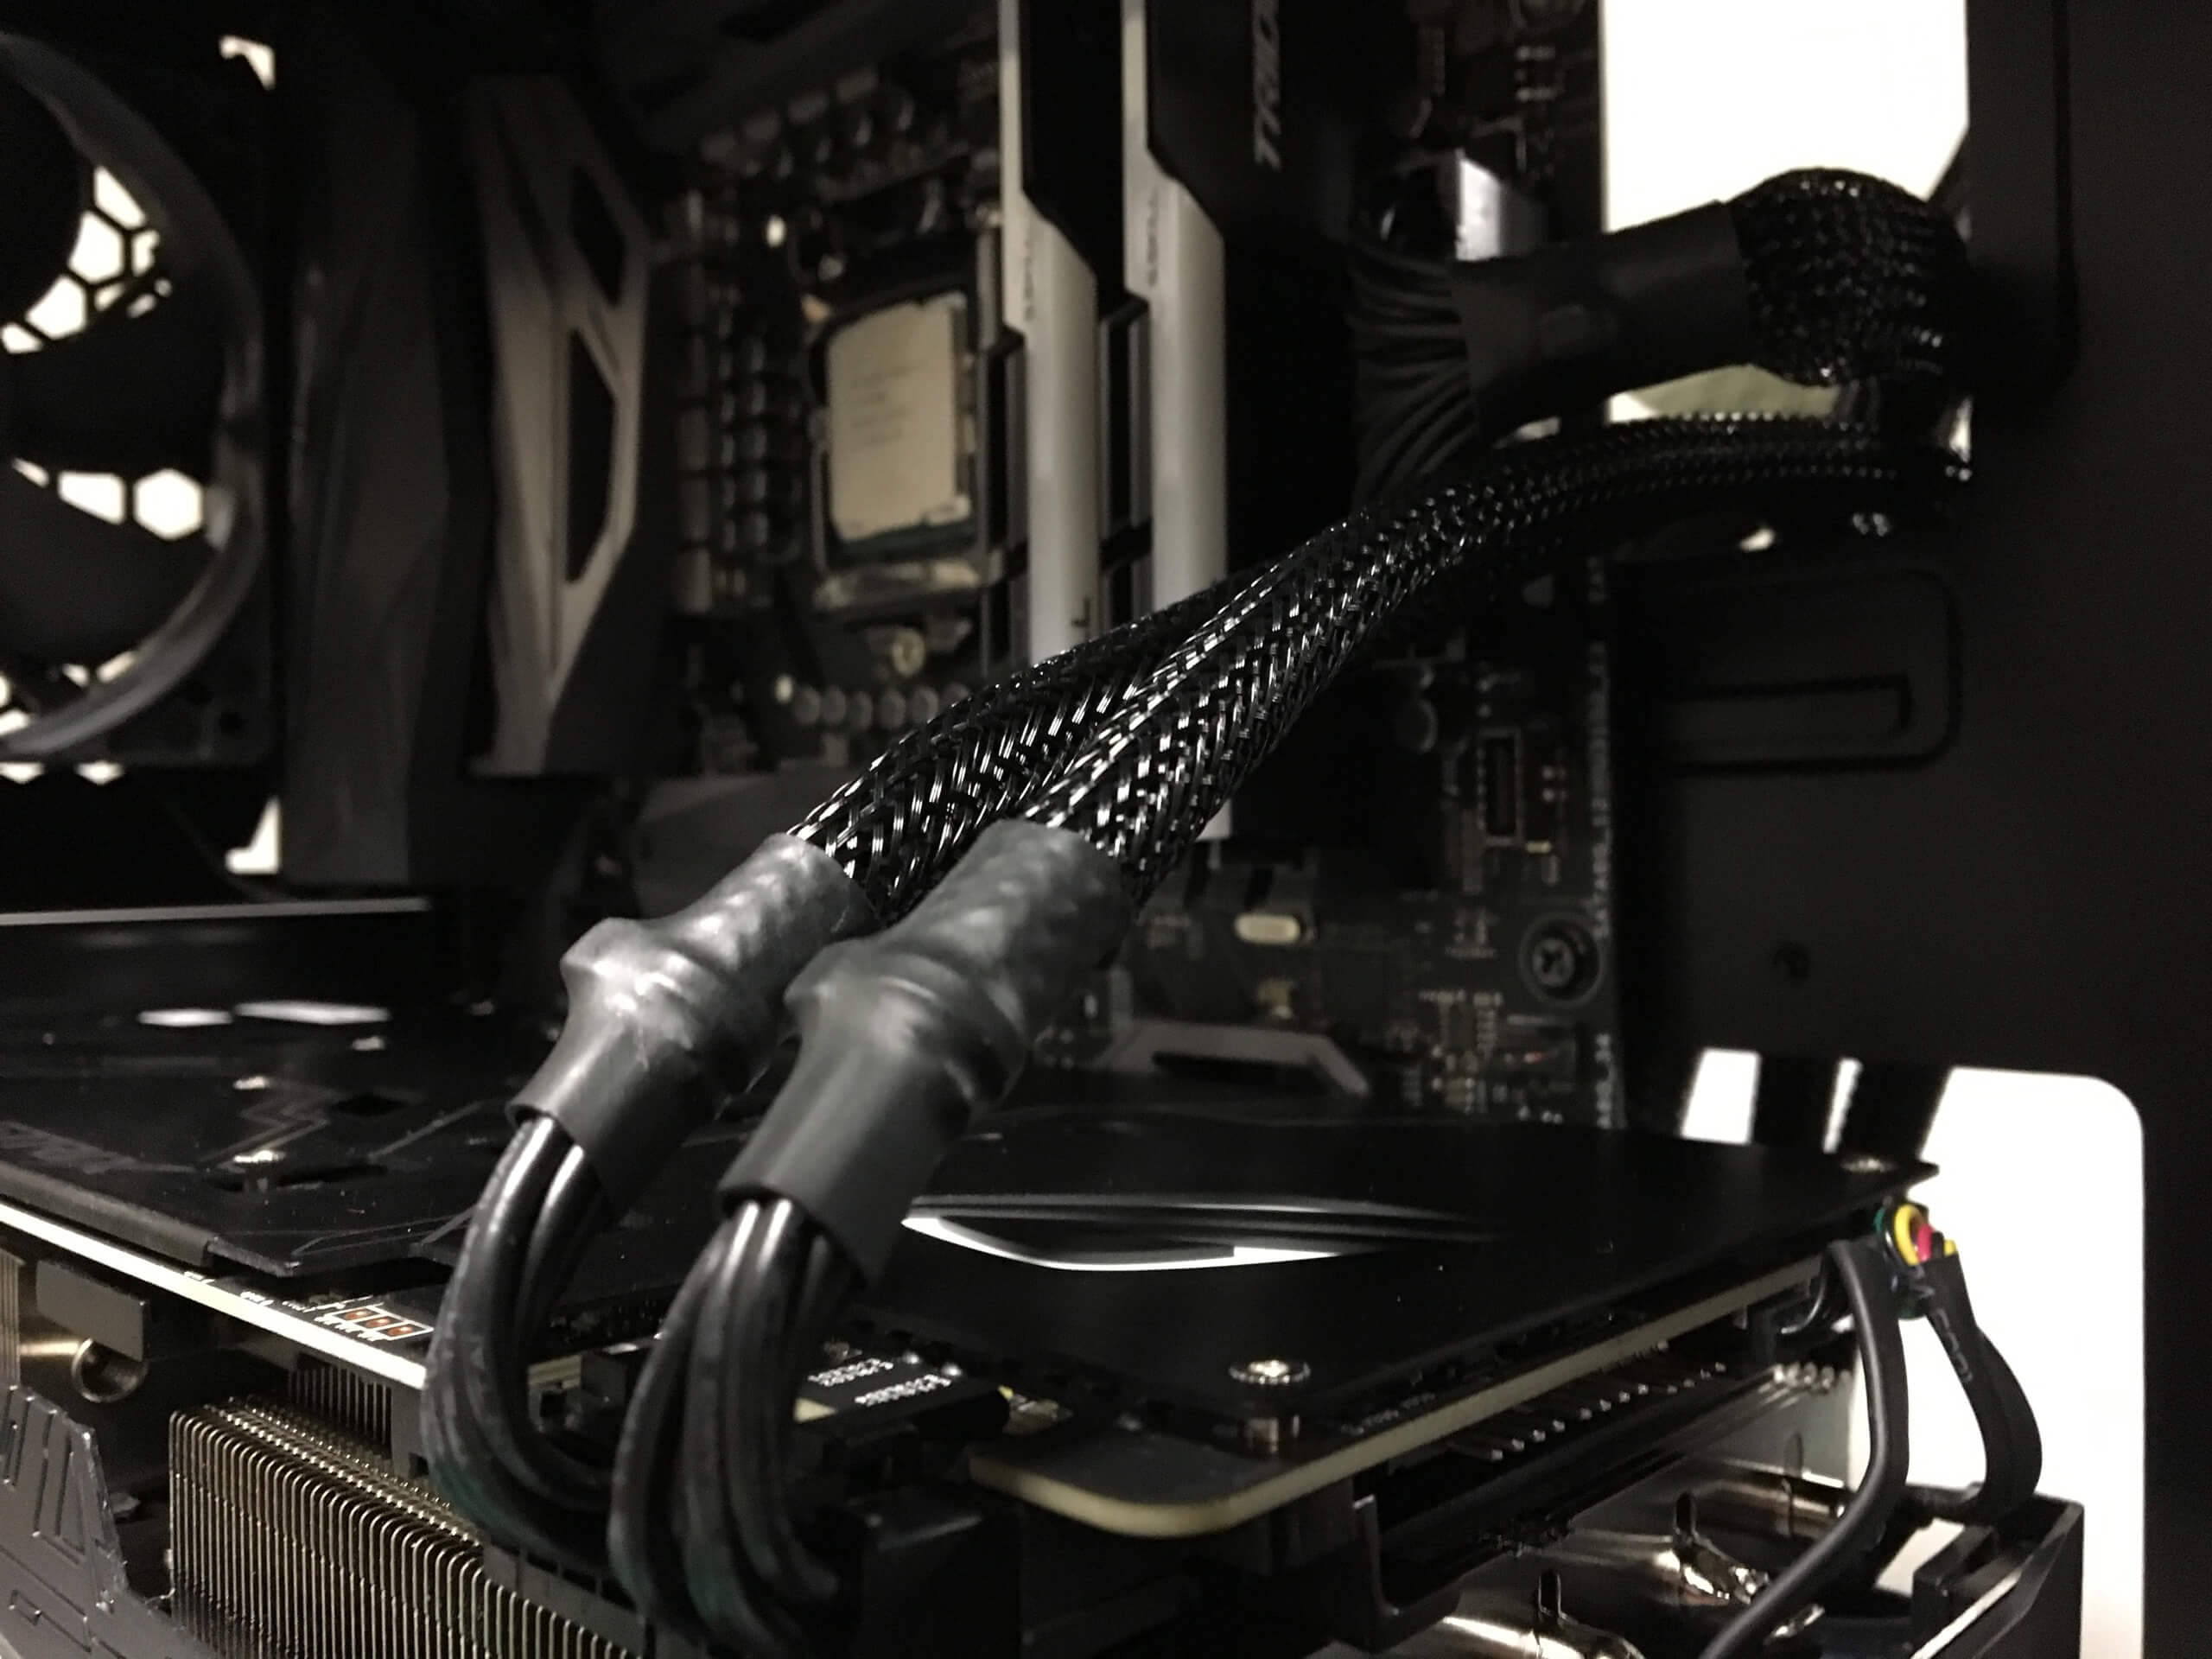 Image #17 Stop Graphics Card From Sagging